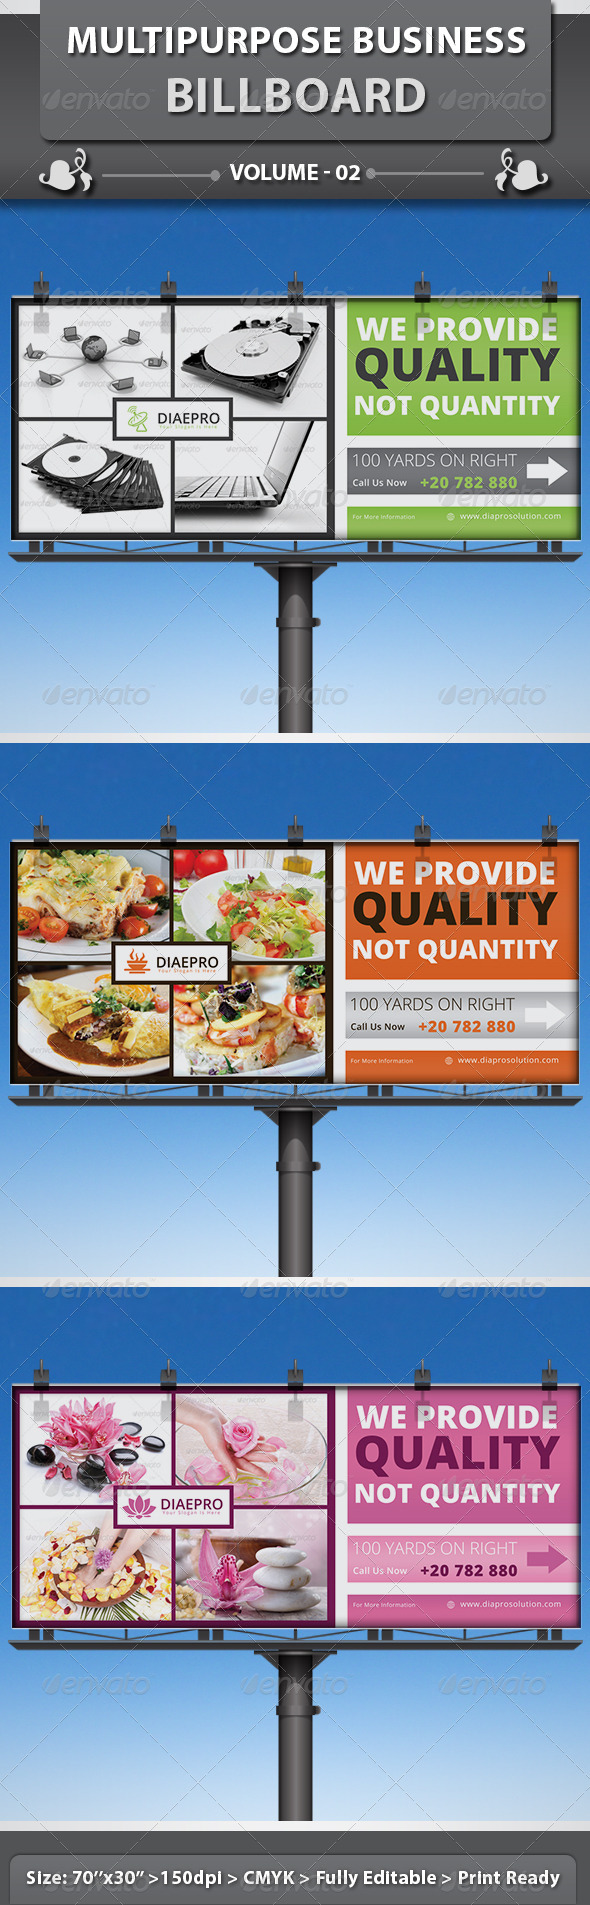 Multipurpose Business Billboard | Volume 2 - Signage Print Templates